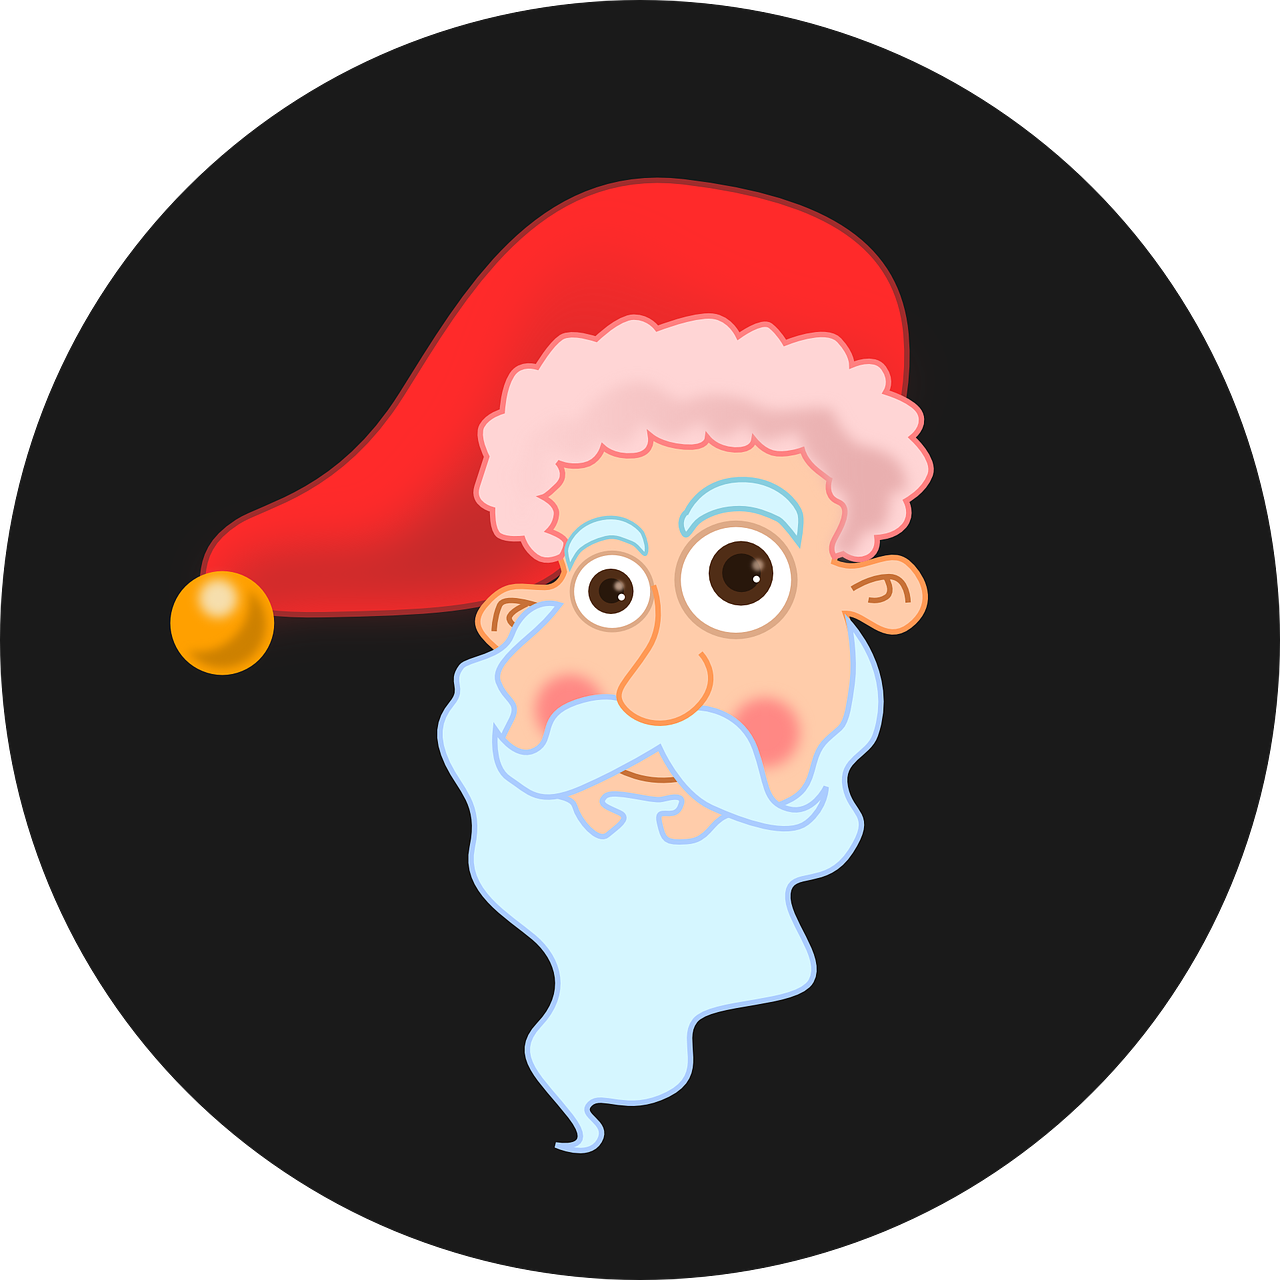 svg royalty free library Beard clipart ginger. Santa claus hat red.